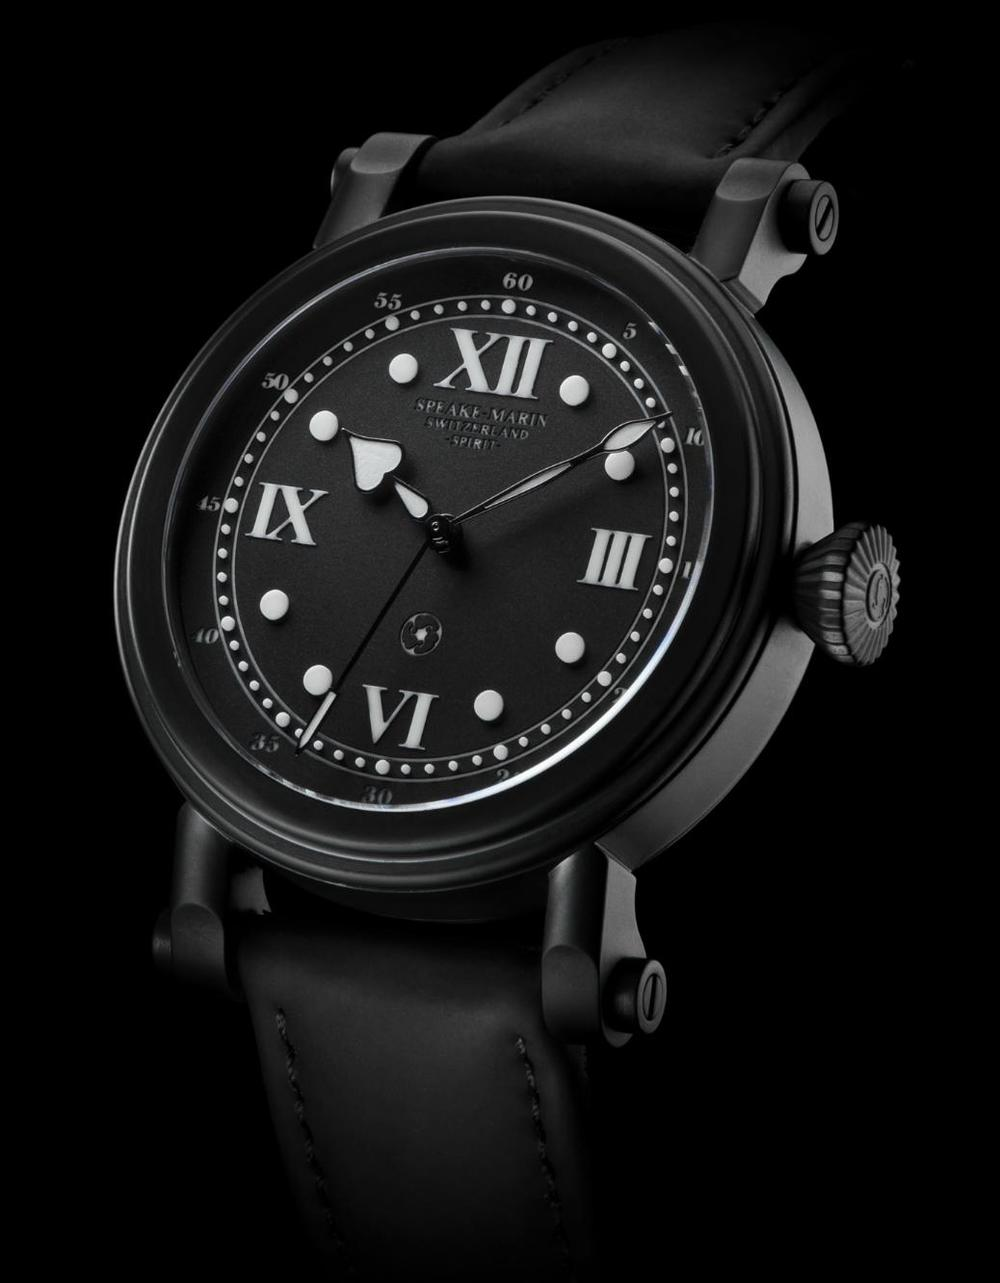 DLC coated model from the highly successful Spirit collection. ©speake-marin